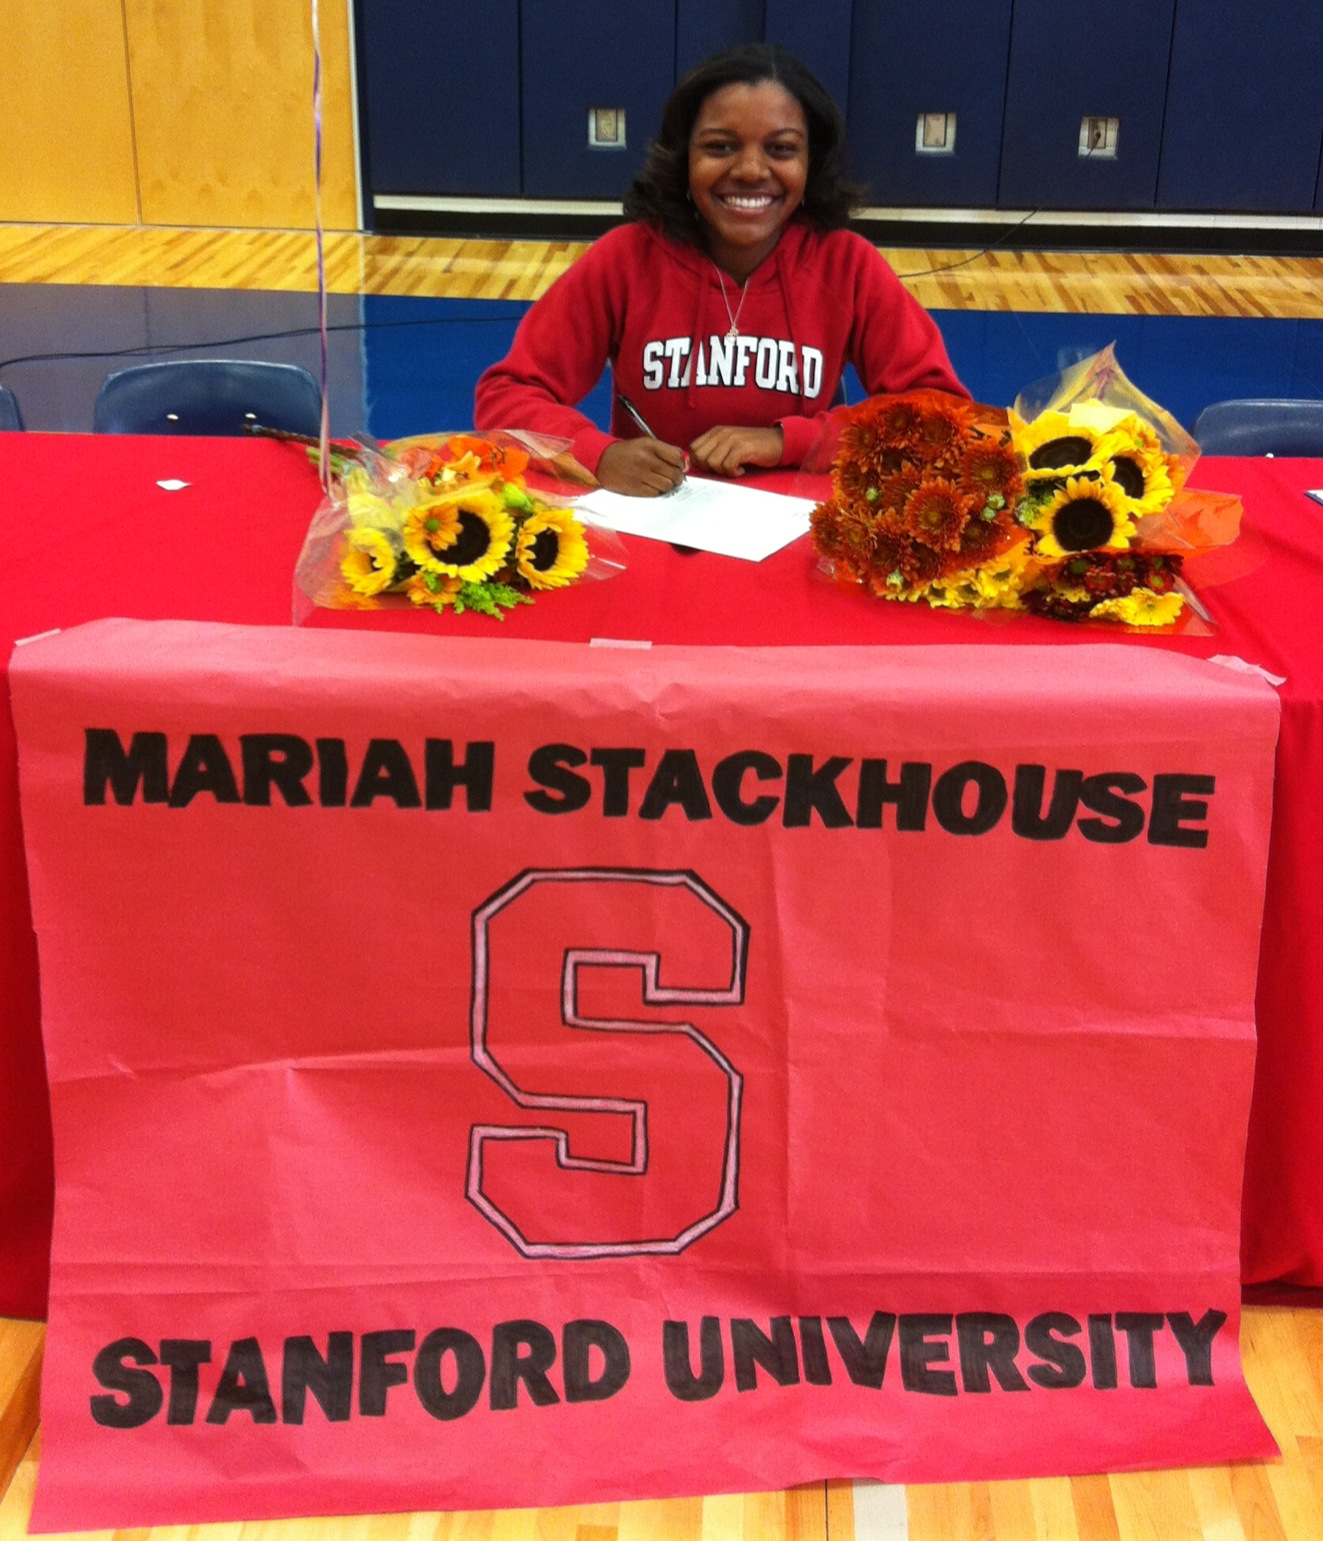 Mariah Stackhouse signs with Stanford